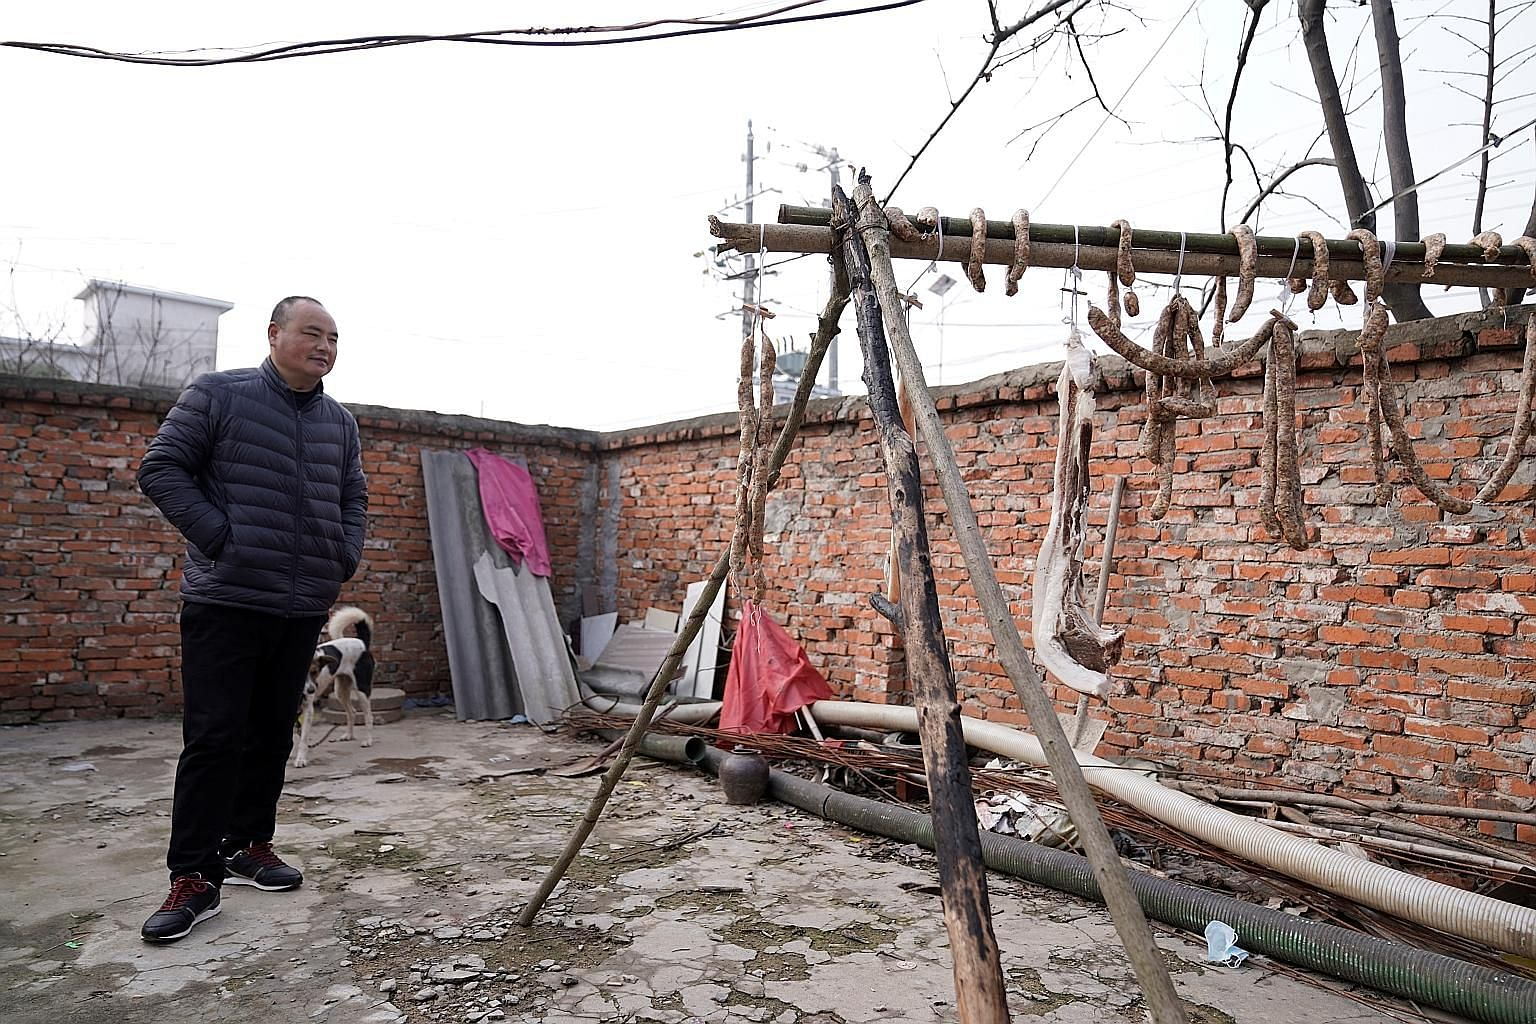 Chinese villager Xu's husband in their yard, where la rou and homemade sausages are strung up. African swine fever has decimated pig herds in China, with pork prices tripling from a year ago due to the shortage.